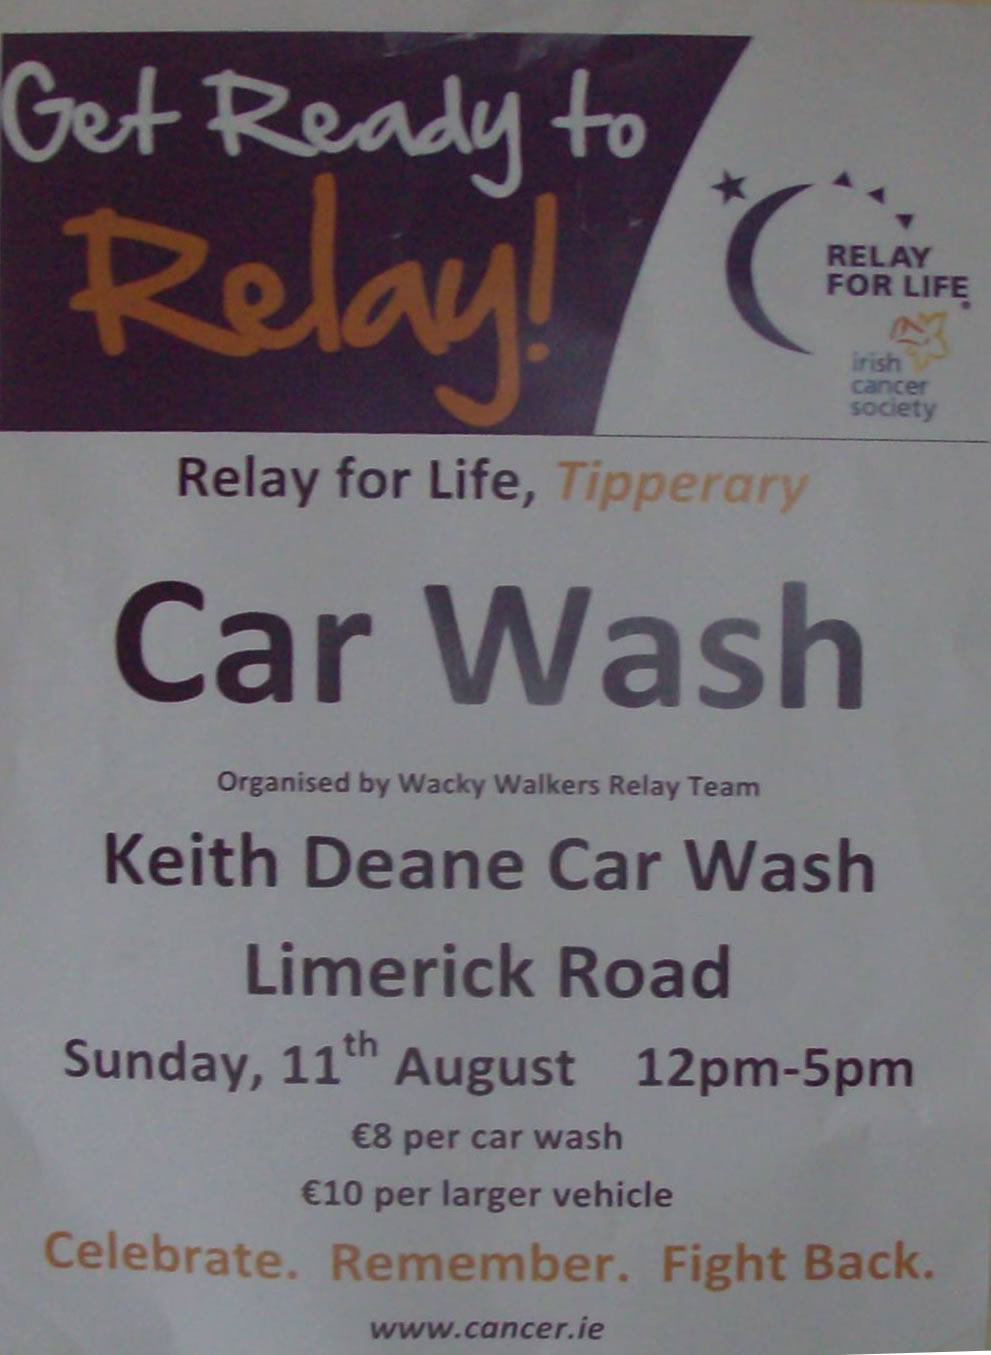 Relay for Life Car Wash Fundraiser | Nenagh.ie